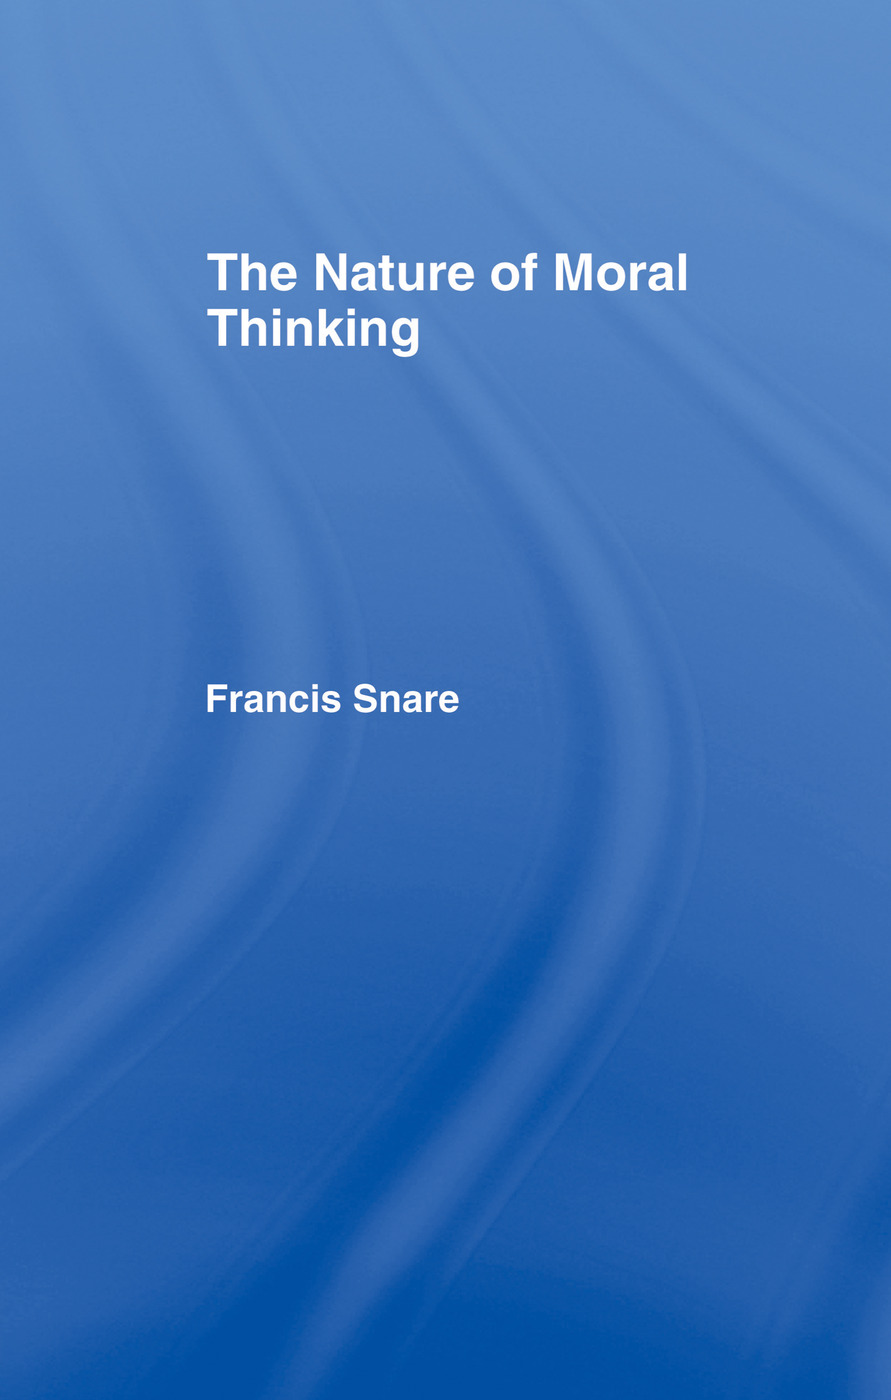 The Nature of Moral Thinking book cover